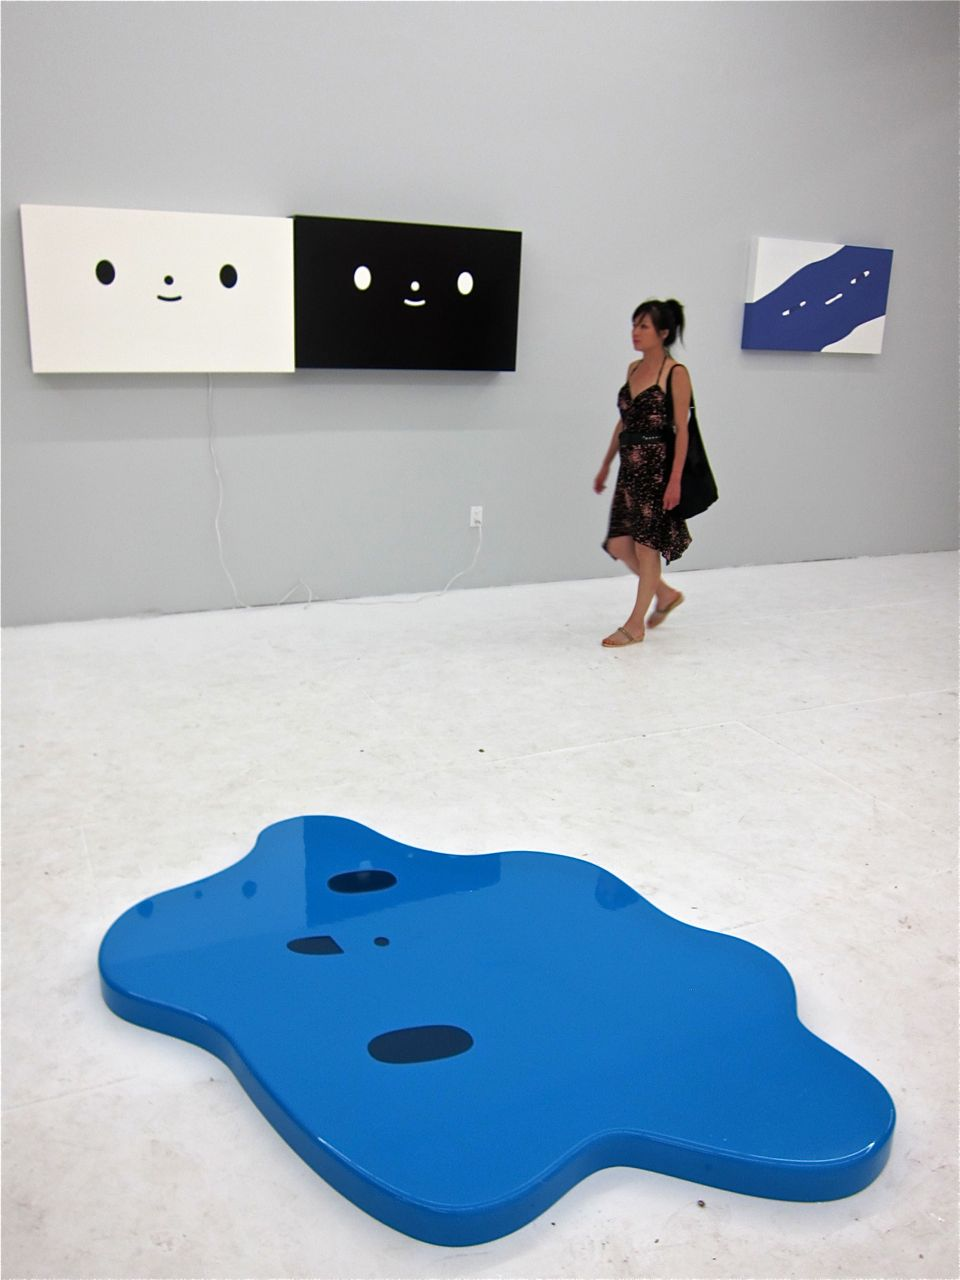 ) The Hole Gallery AM 21